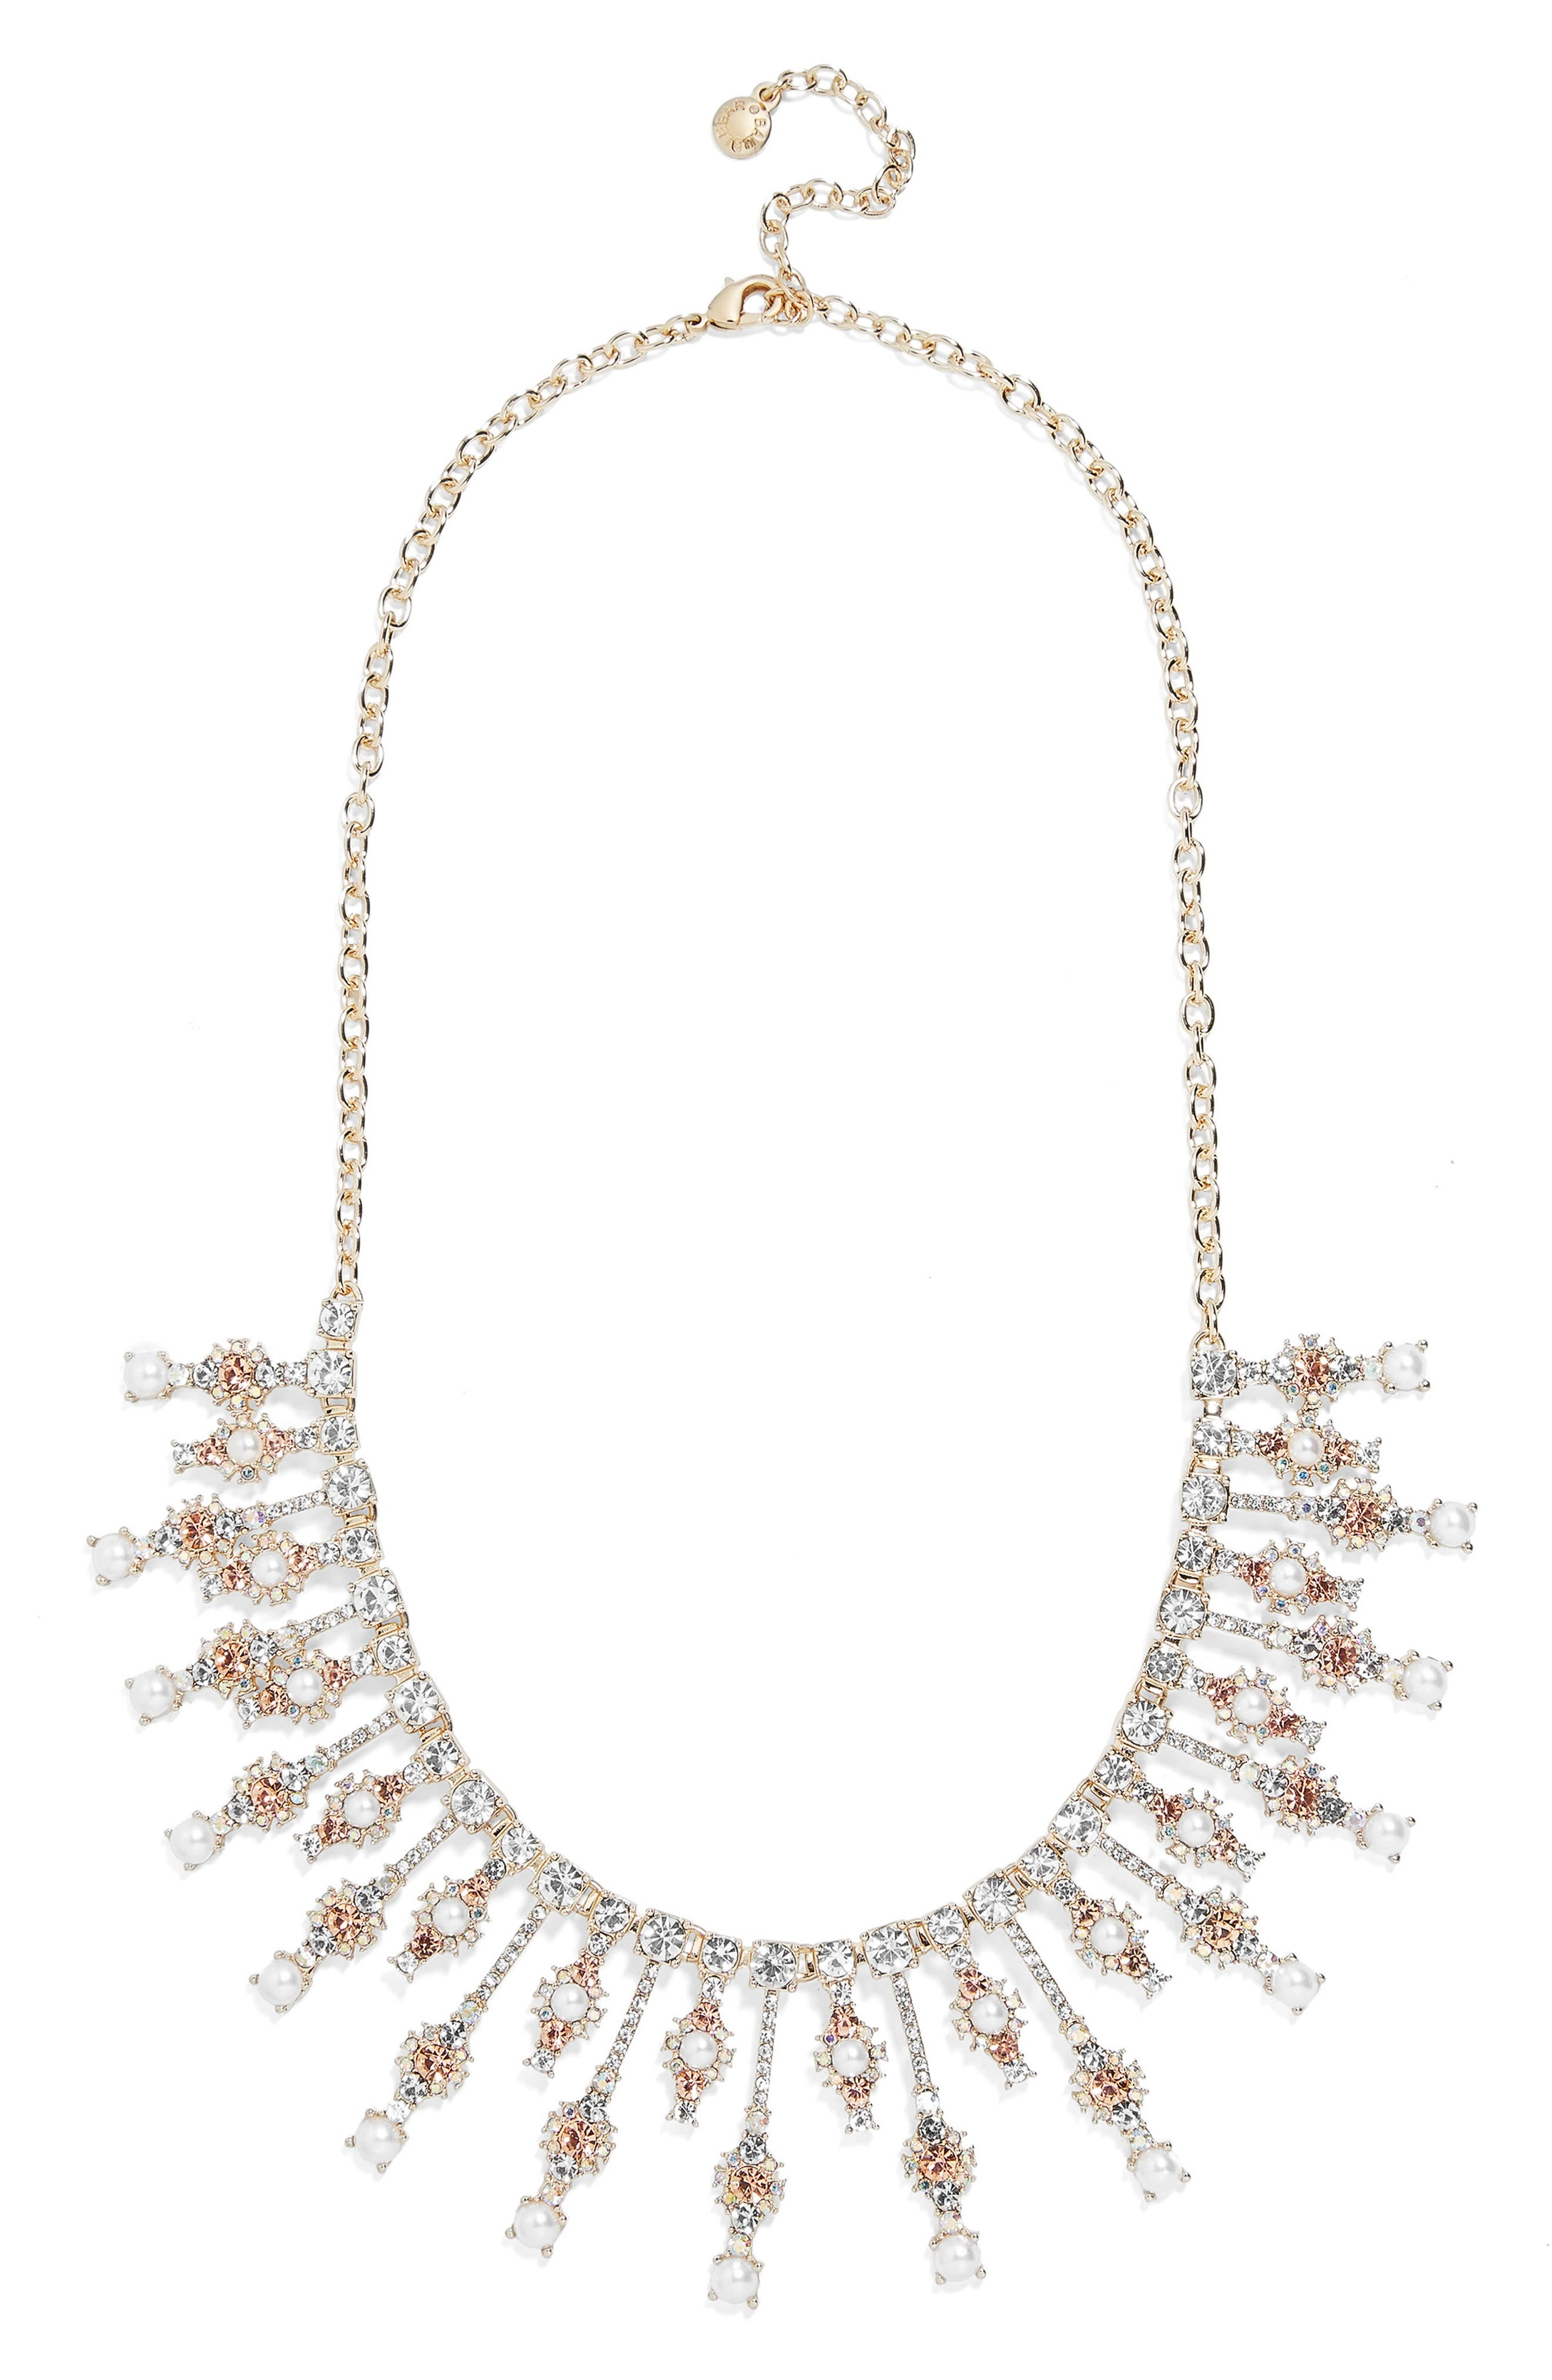 x Micaela Erlanger Roll Out the Red Carpet Statement Necklace,                             Main thumbnail 1, color,                             GOLD